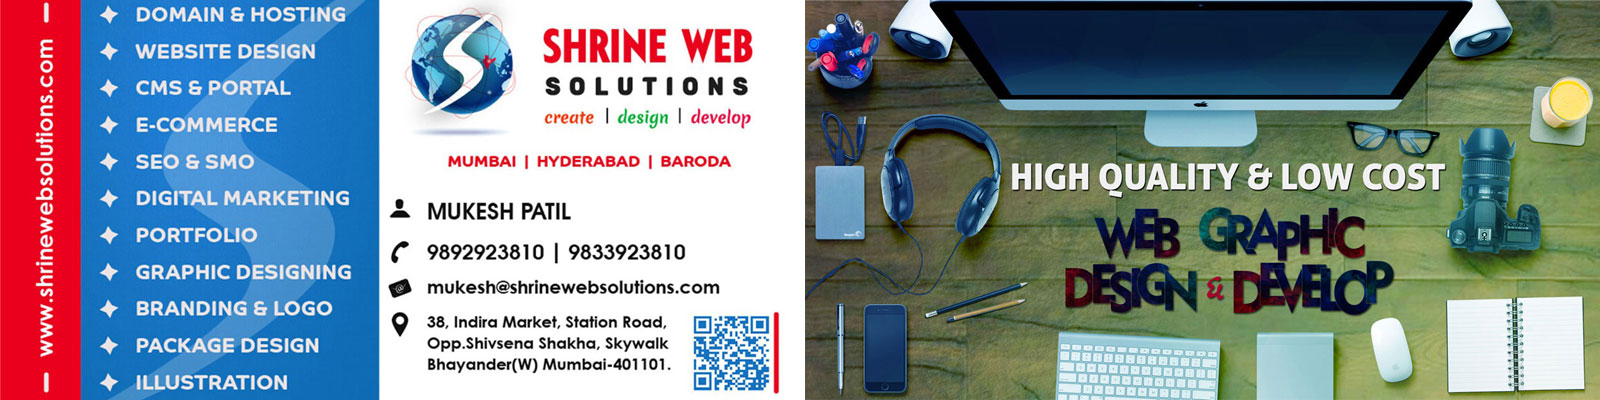 shrinewebsolutions1